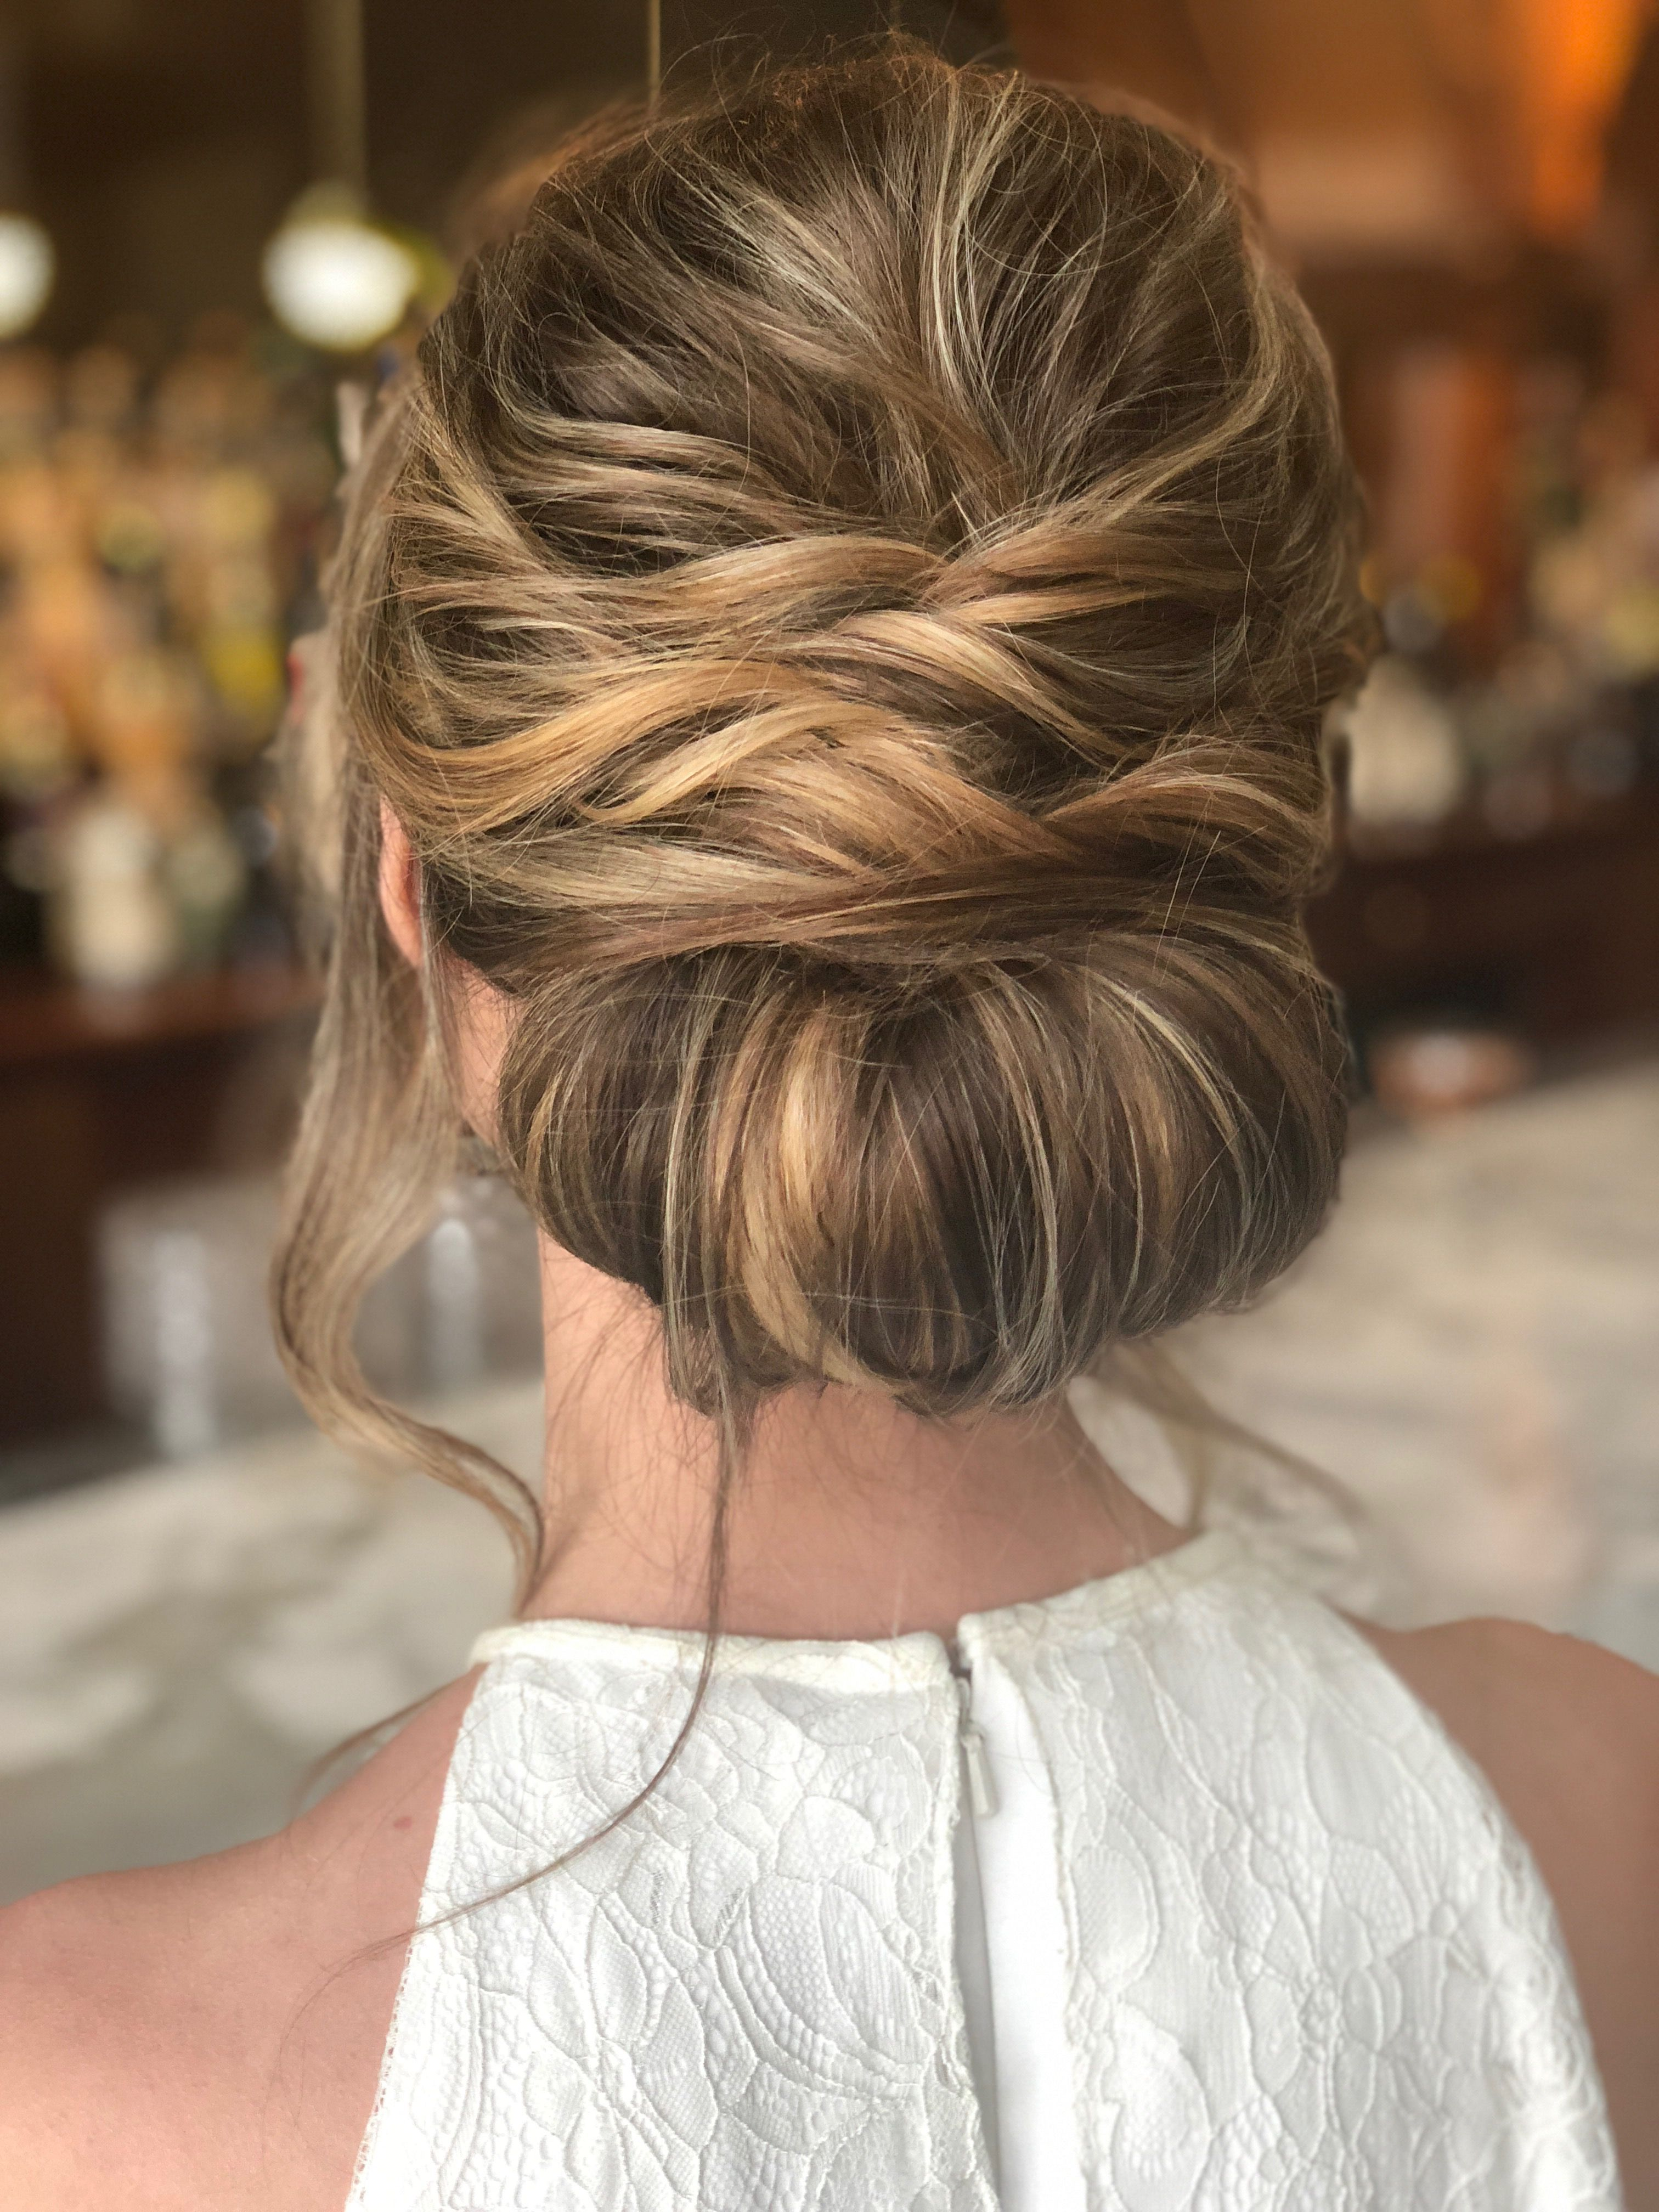 good updo if you want to keep your hair out of your face